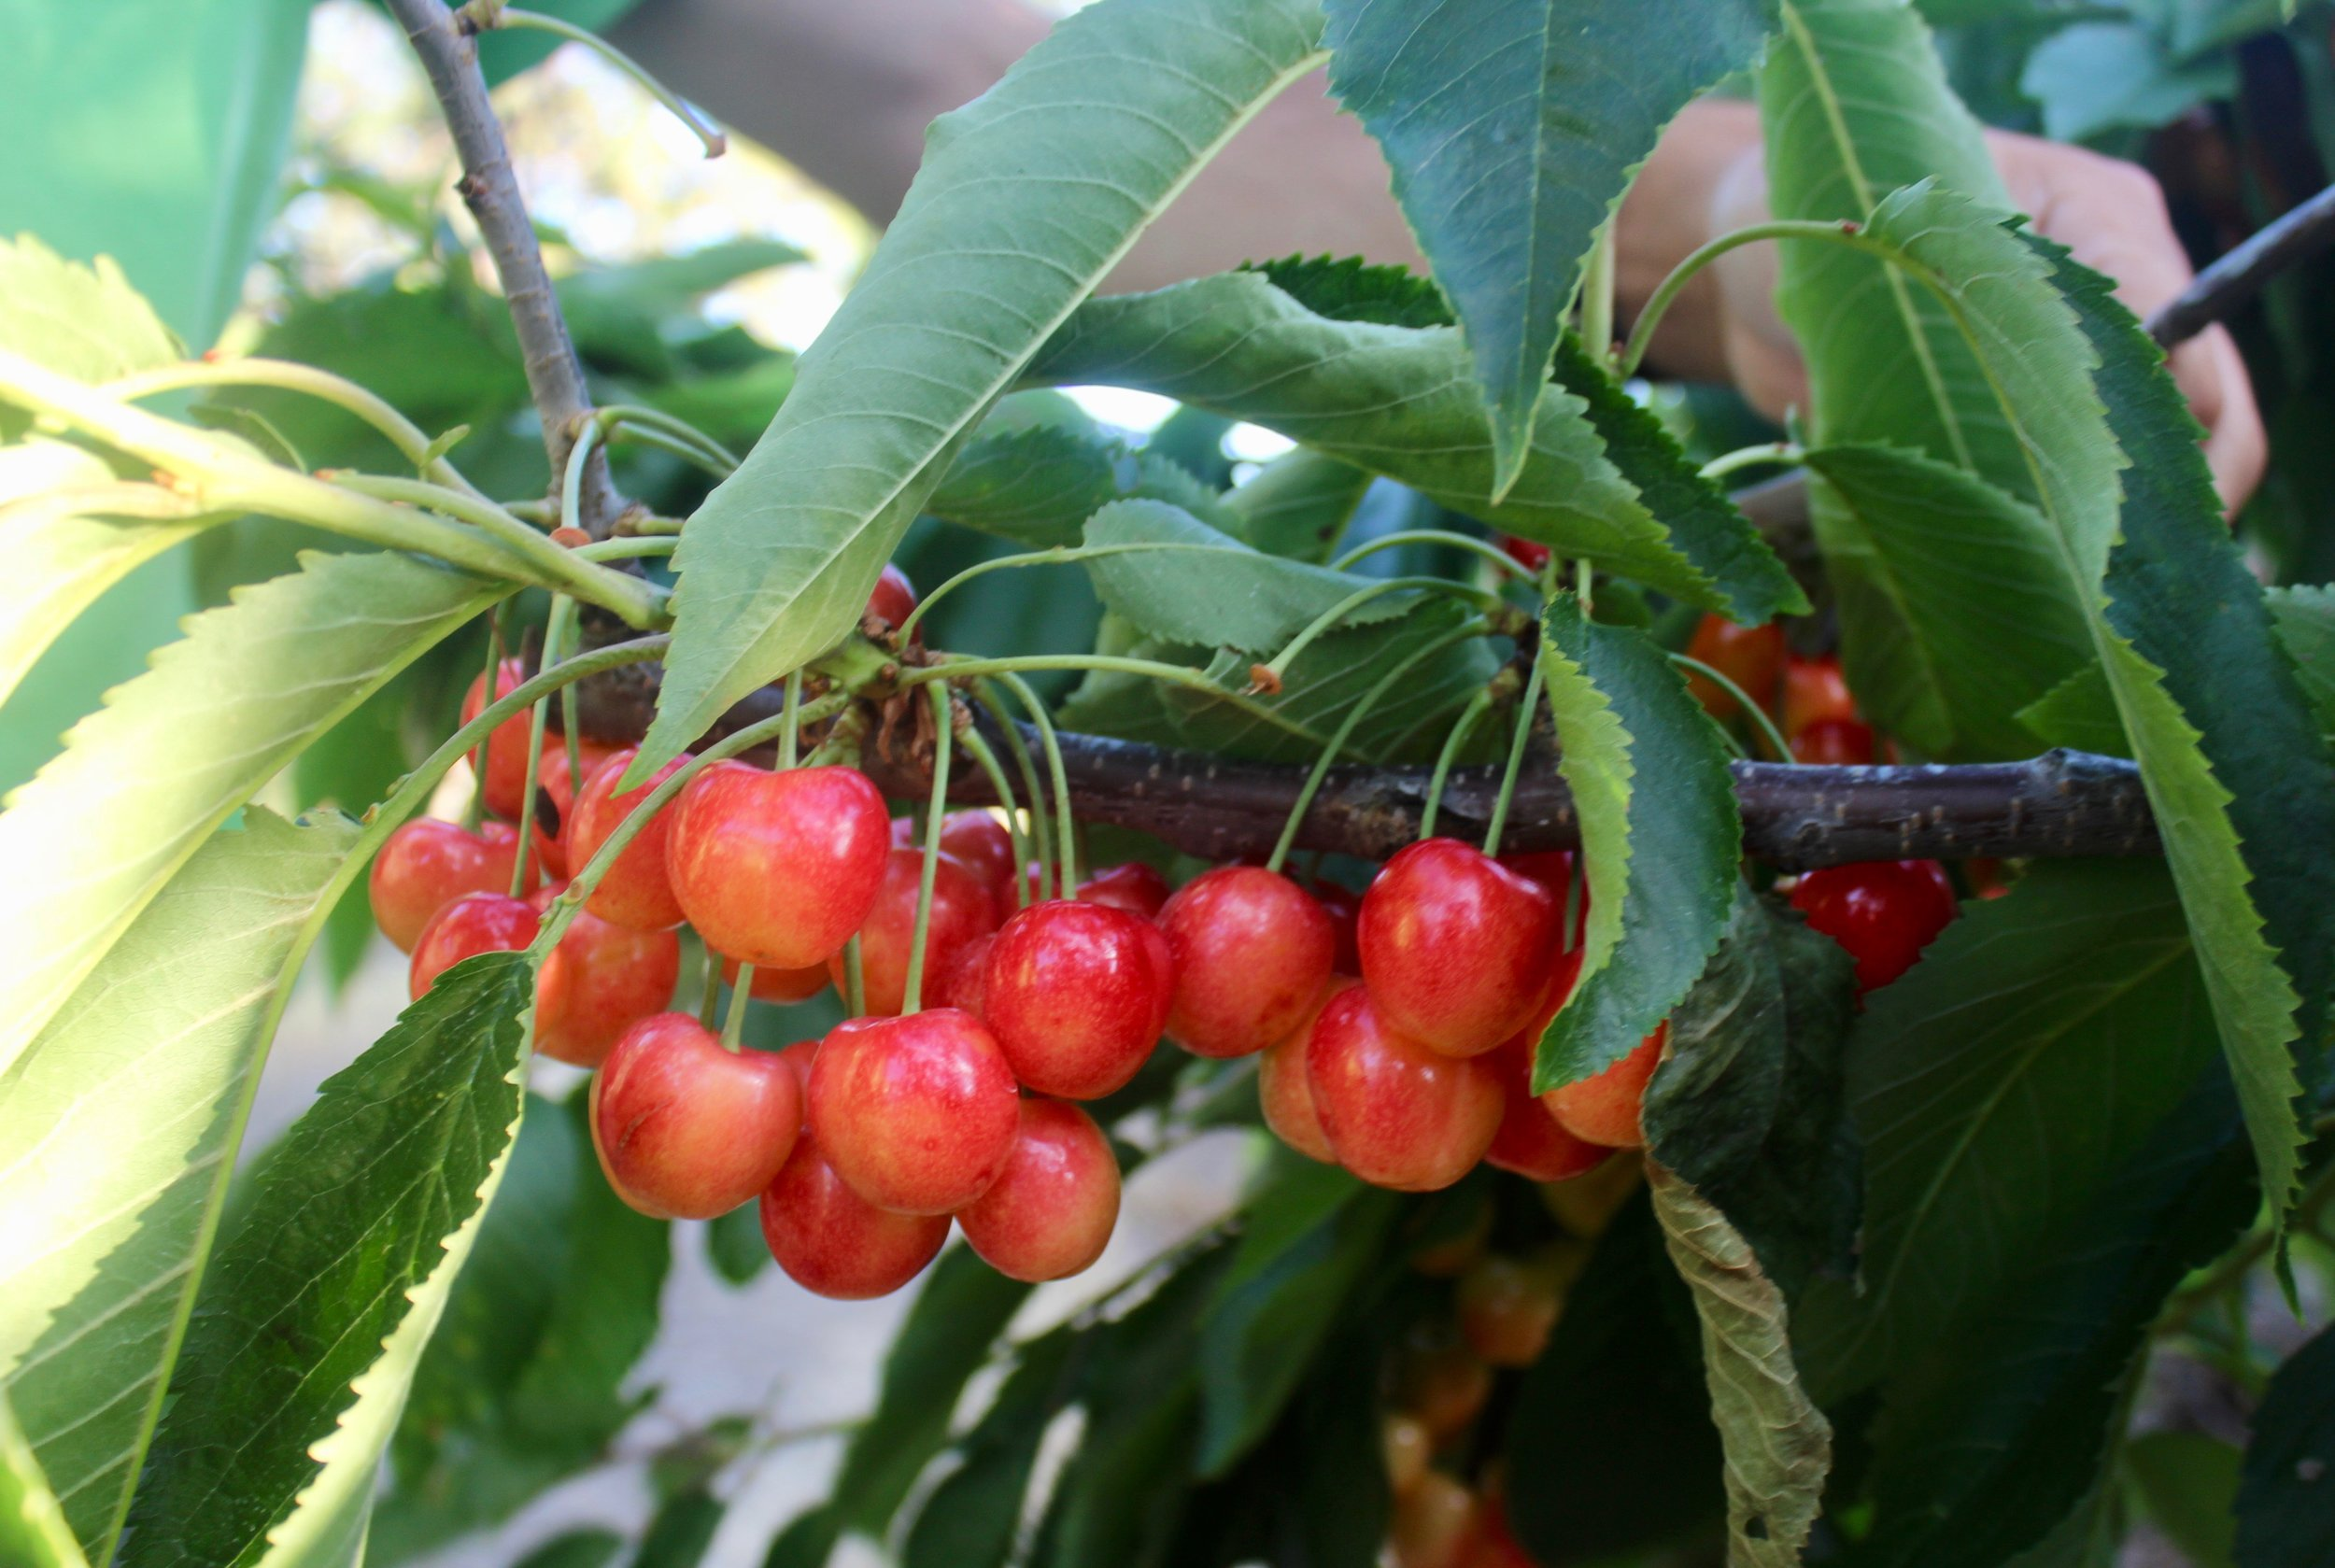 Early Robin cherries grown in The Dalles. Varieties like Early Robin are self-compatible and require honey bees or mason bees to move pollen from a neighboring compatible pollen donning tree (pollinizer) to set fruit. Early Robin is a sweeter than 'Rainier' and relatively firm - a great Oregon cherry! Photo Credit: Molly Alloy.